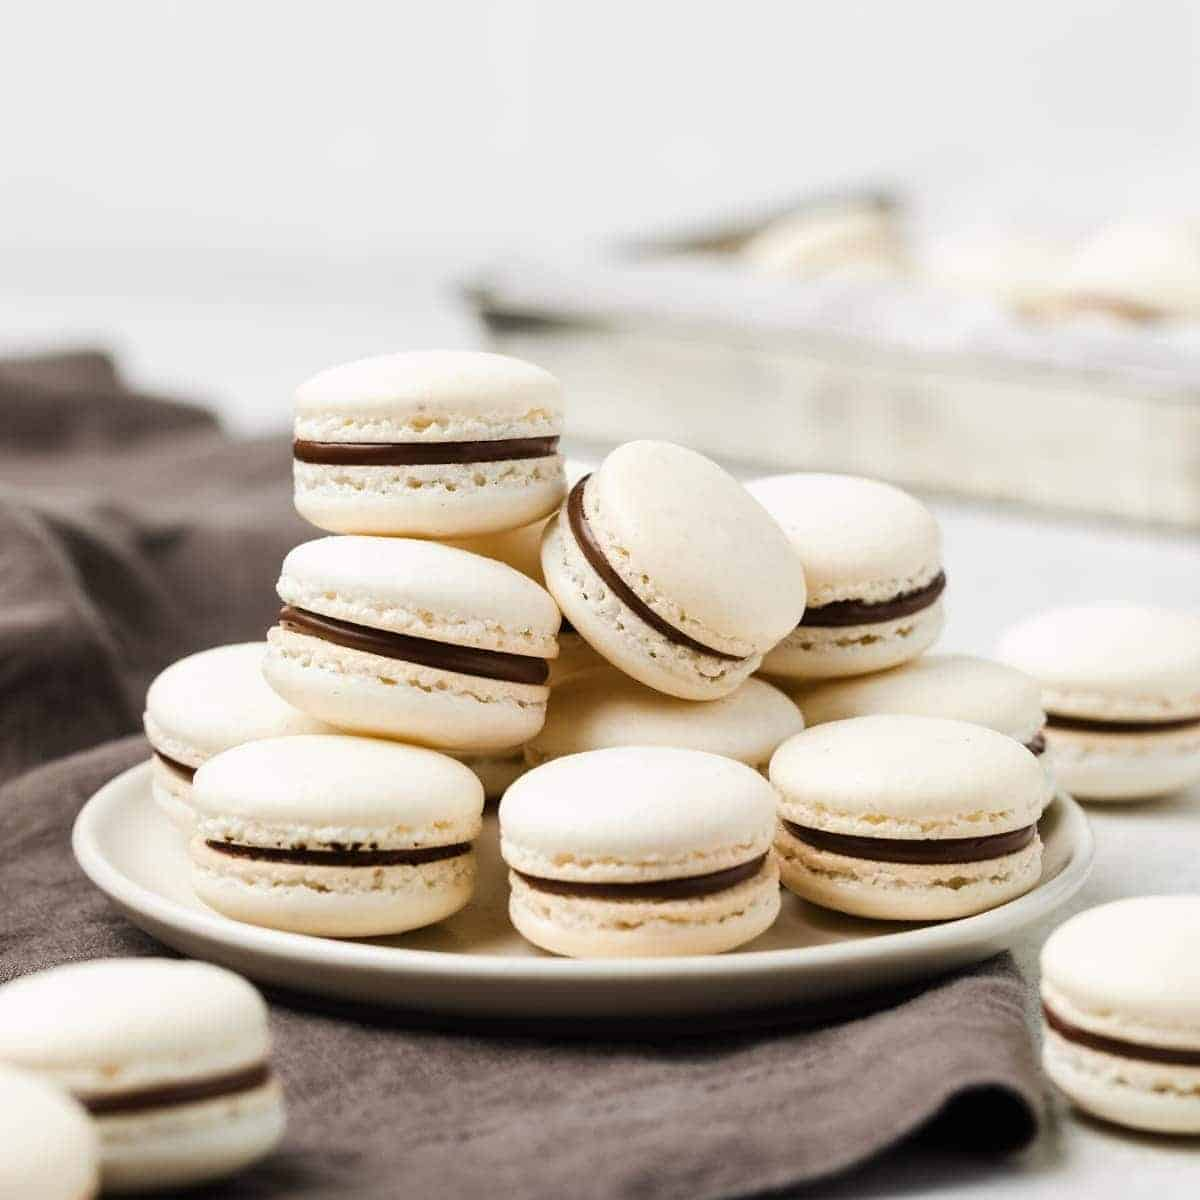 gorgeous macarons with chocolate filling on a white plate